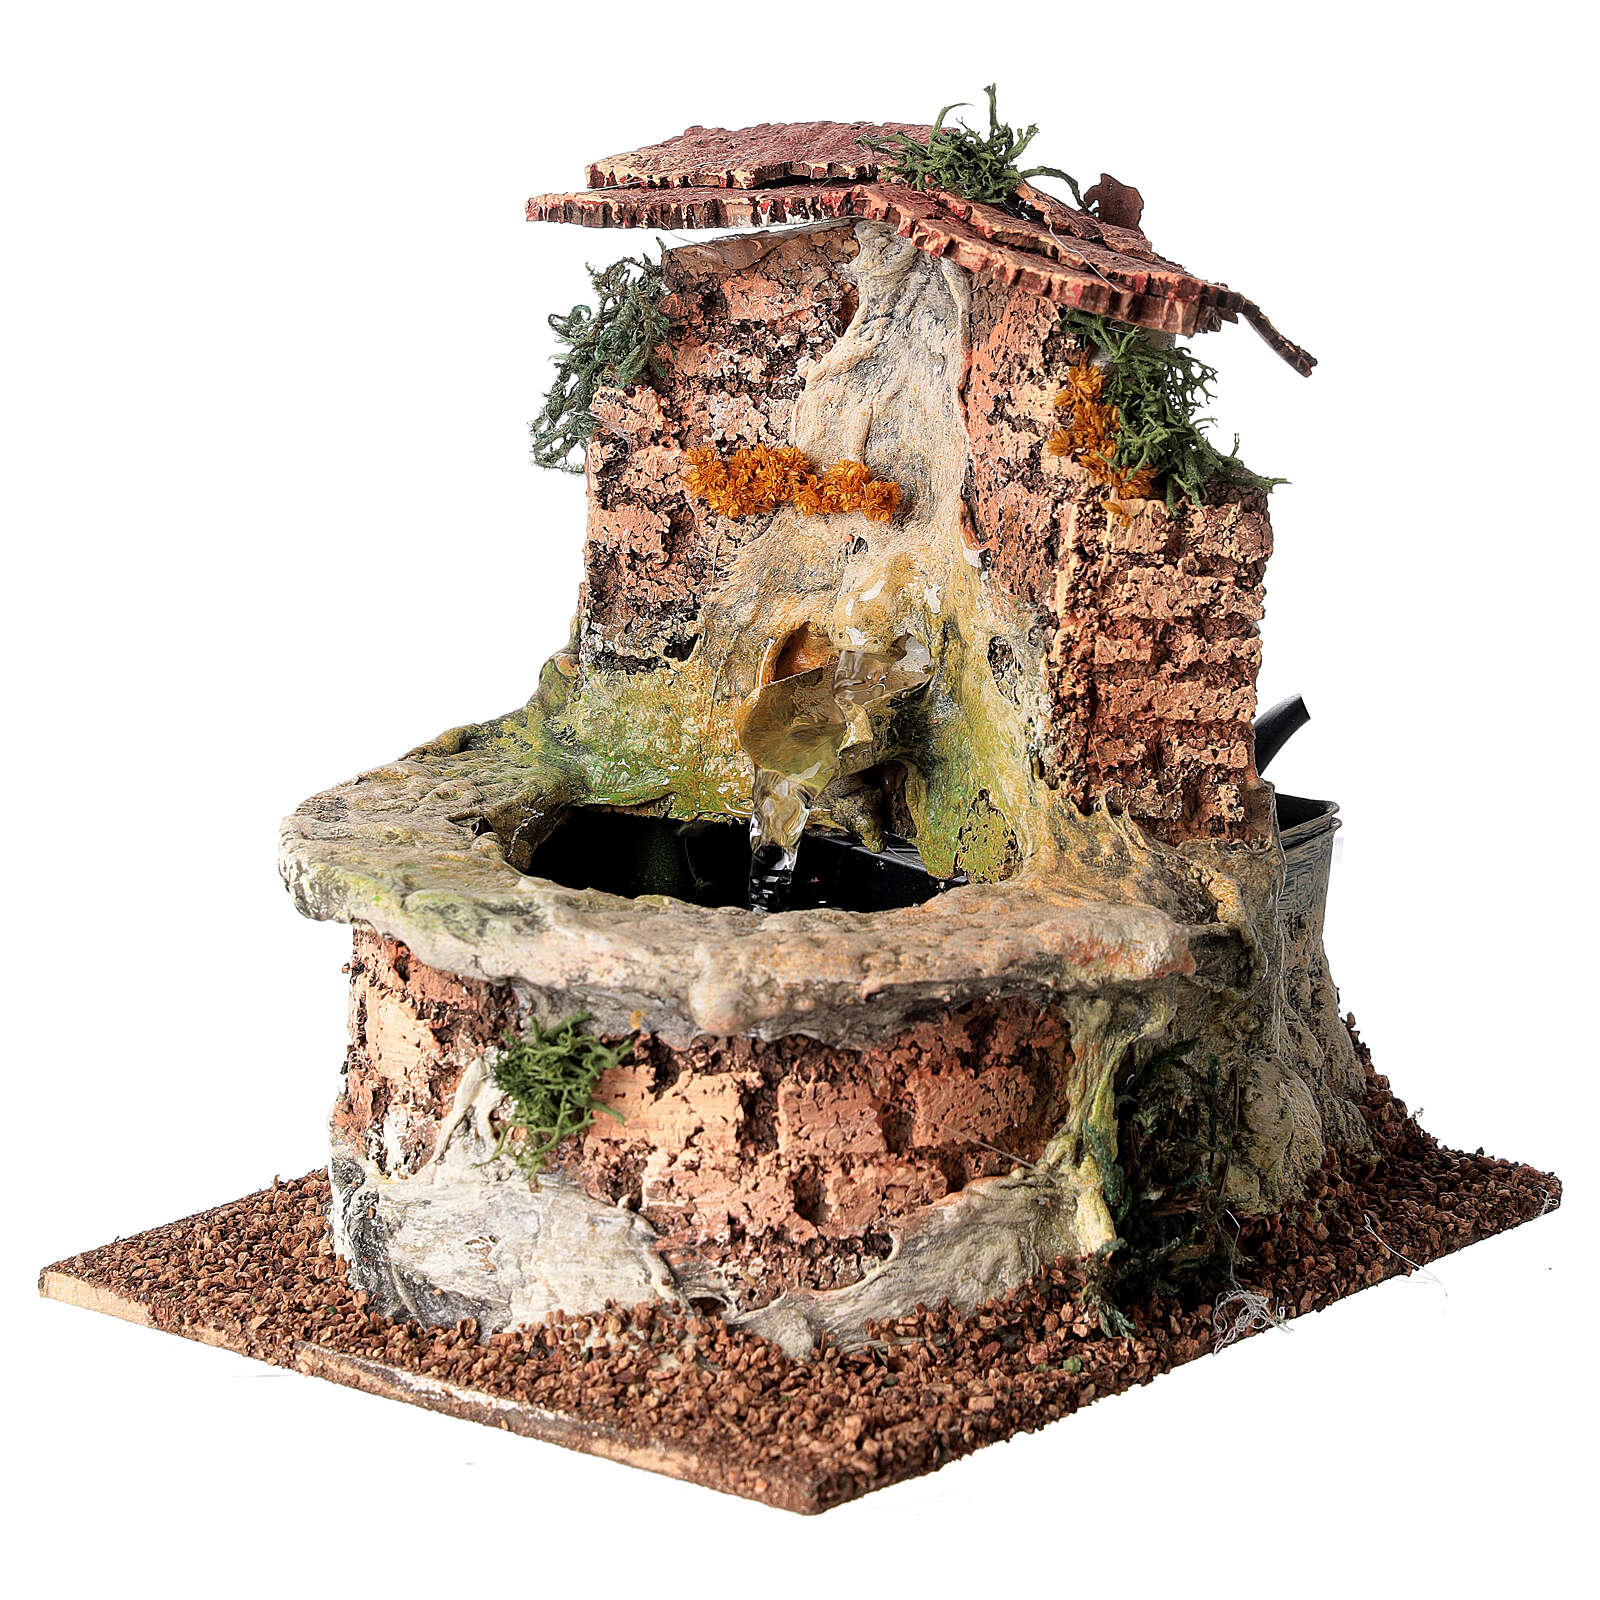 Cork electric fountain for Nativity Scene with 10-12 cm figurines 4